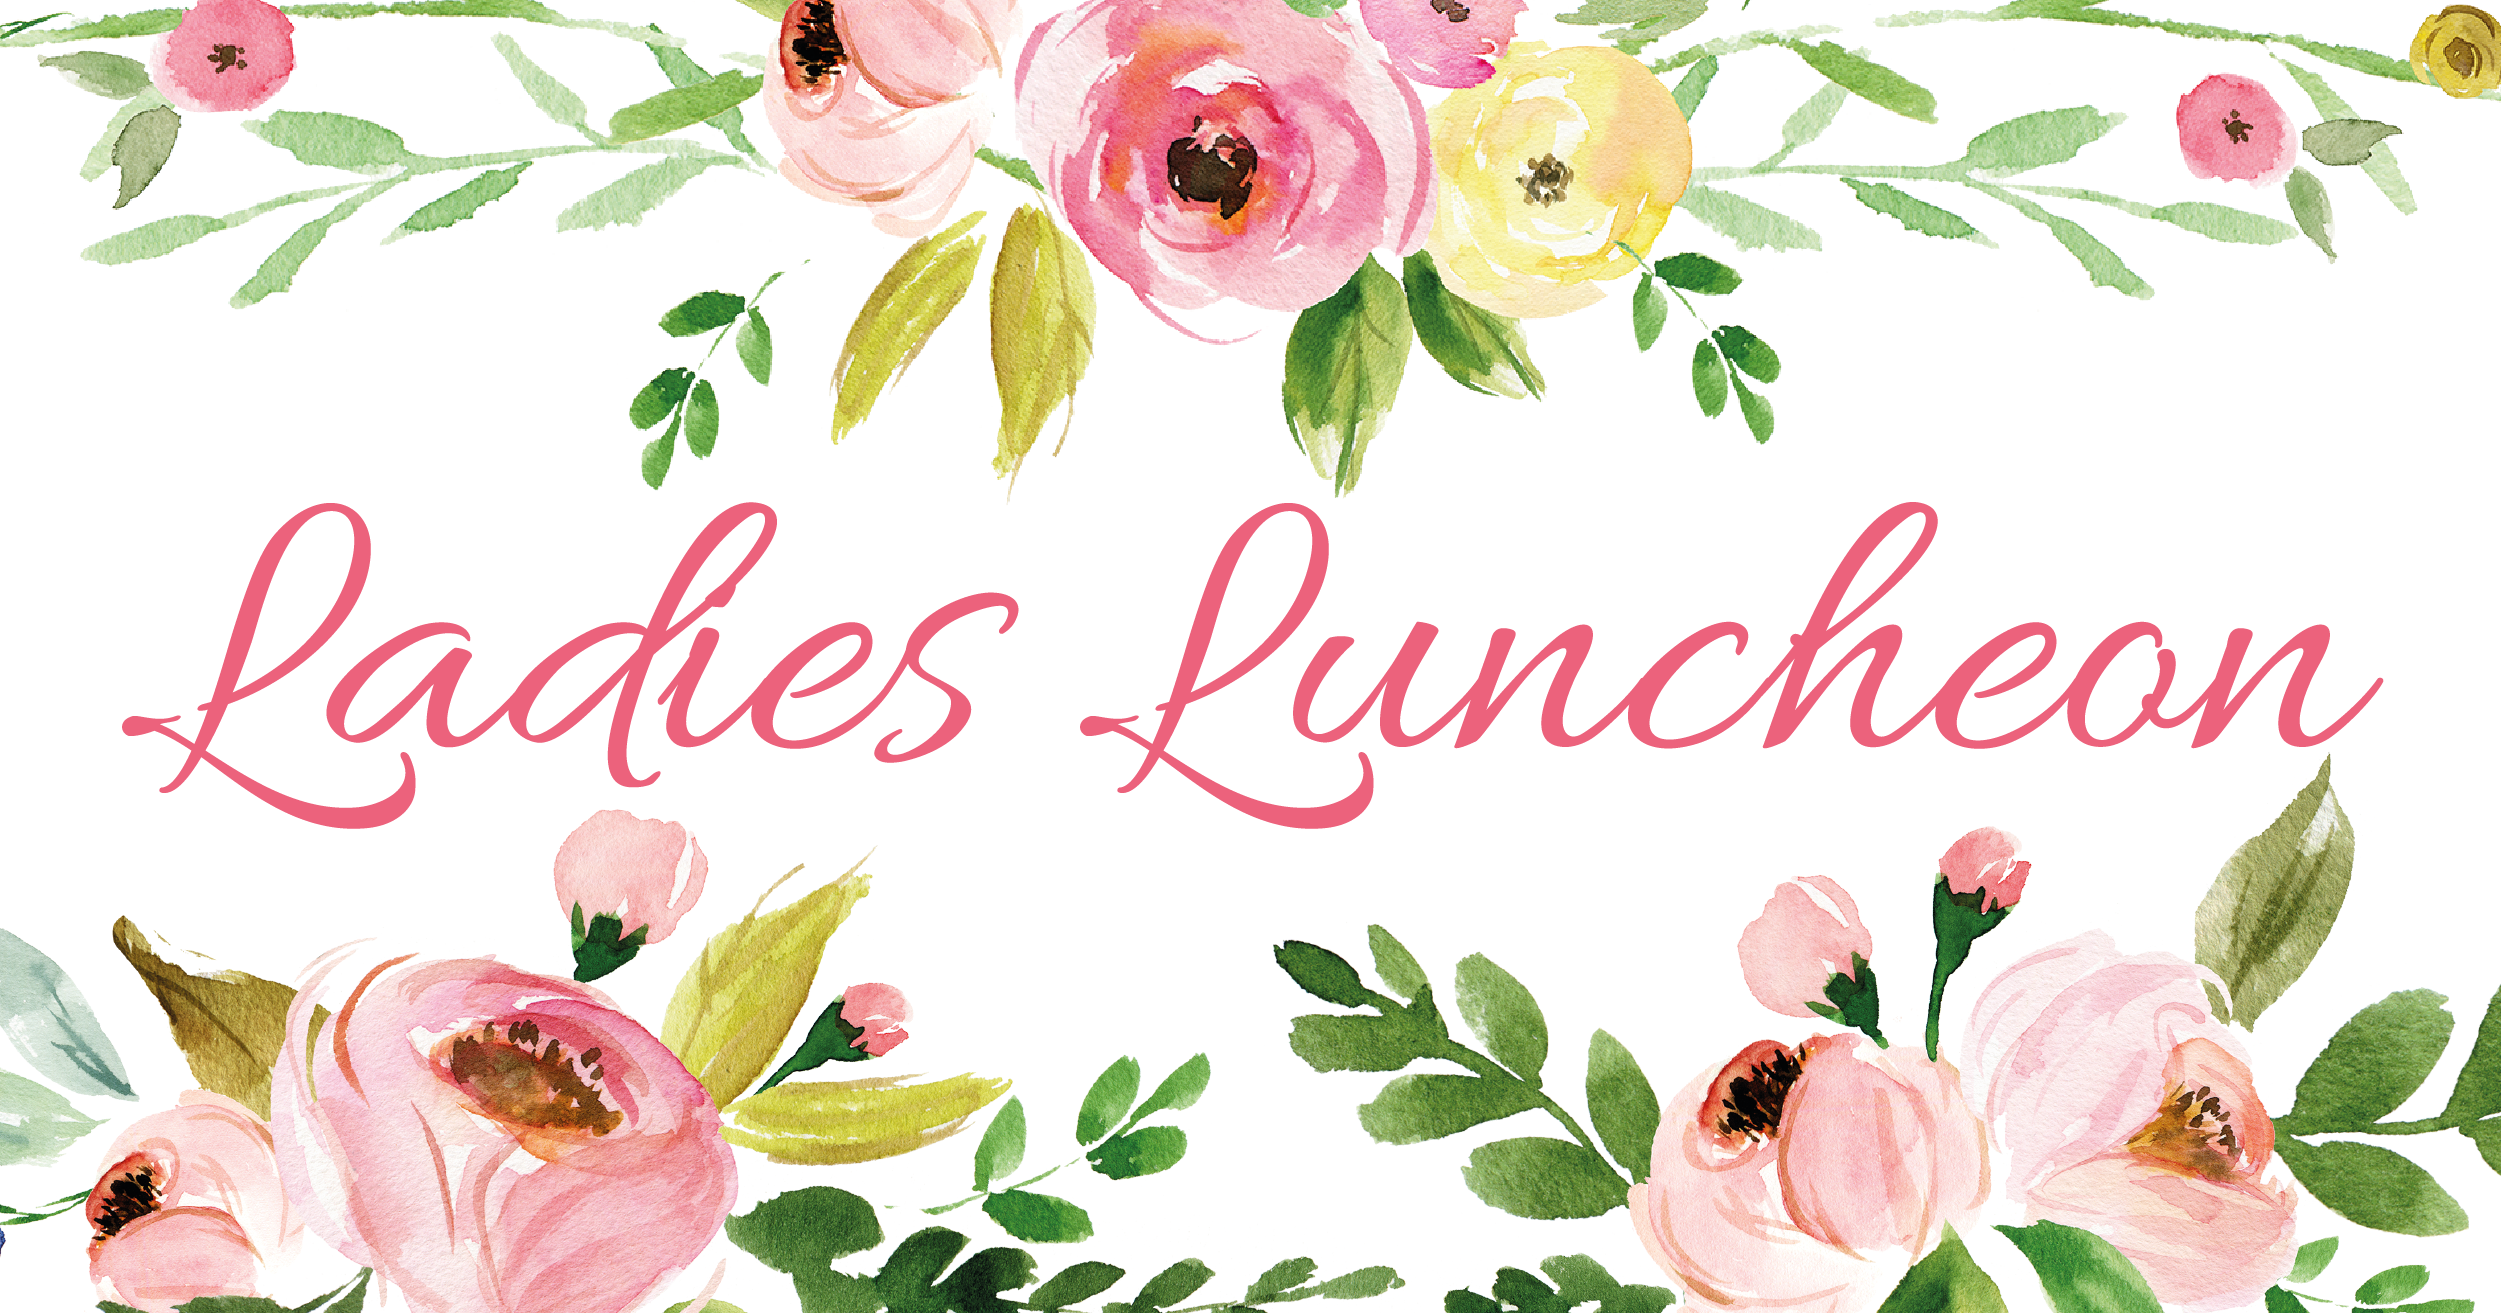 Ladies lunch clipart vector stock Clearwater Yacht Club Ladies Luncheon – Clearwater Yacht Club vector stock